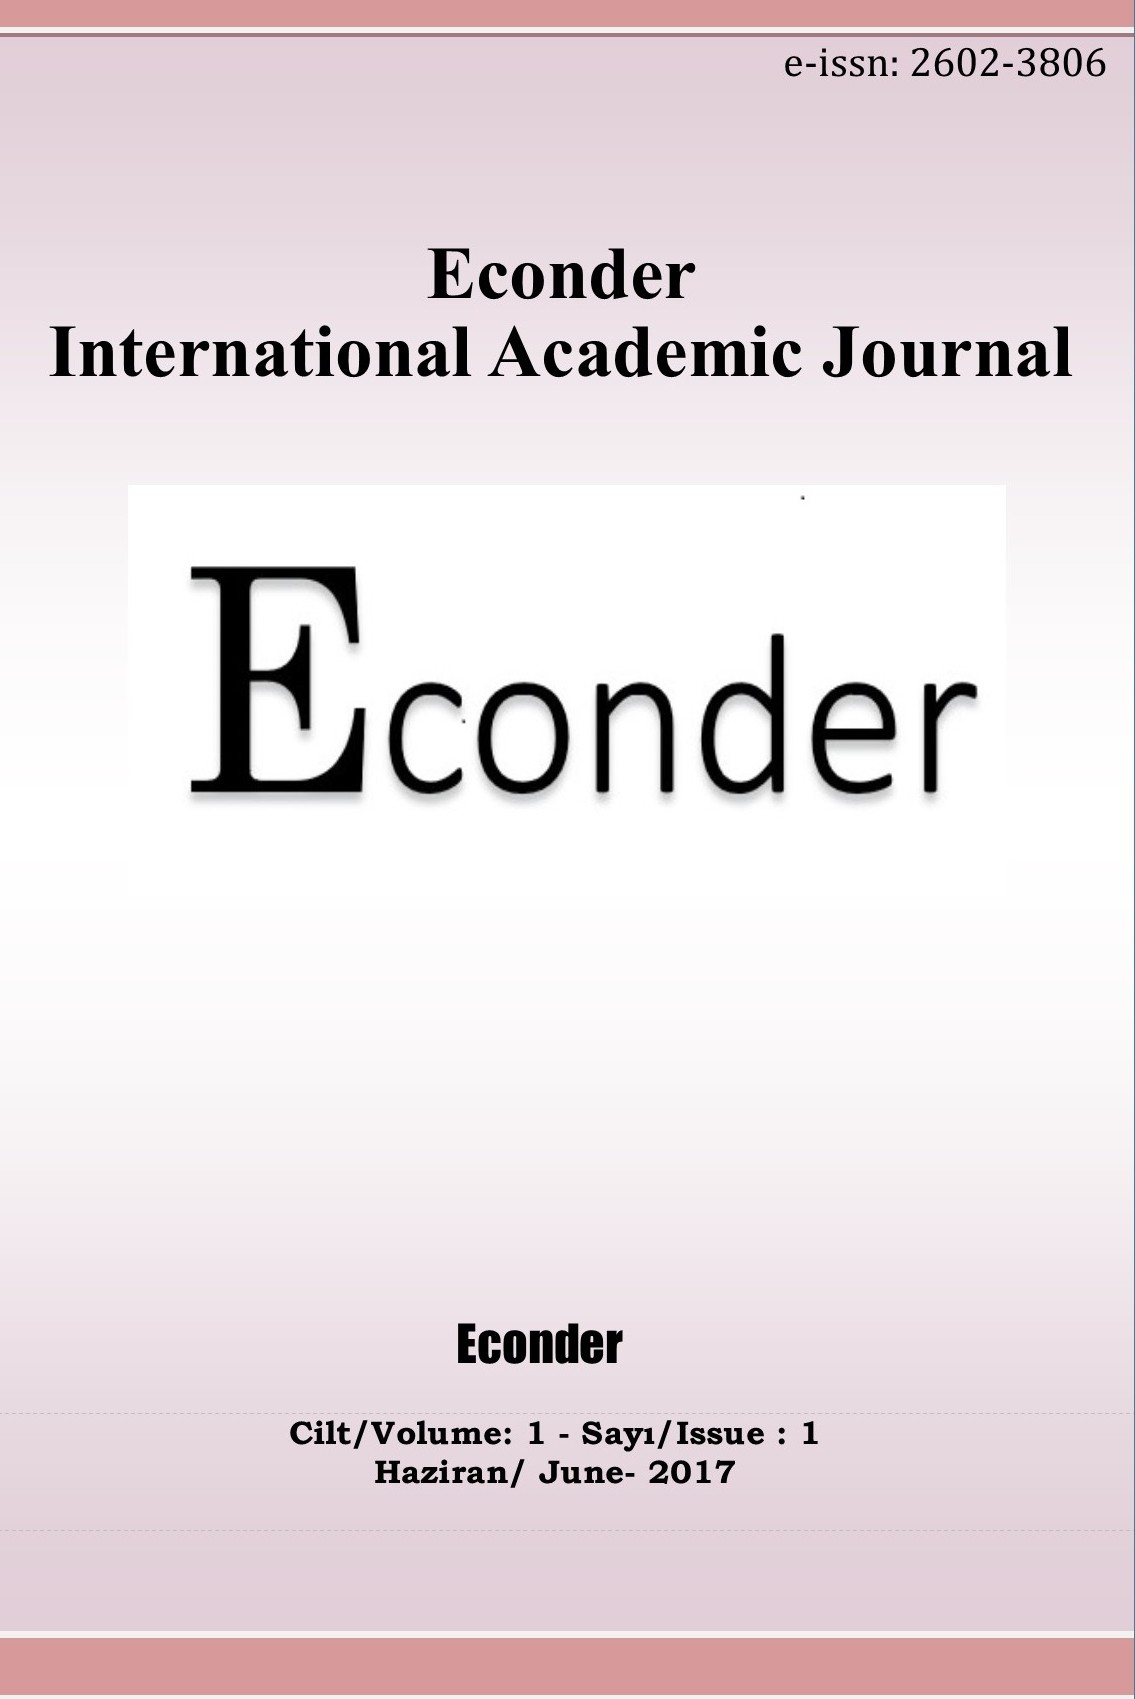 Econder International Academic Journal